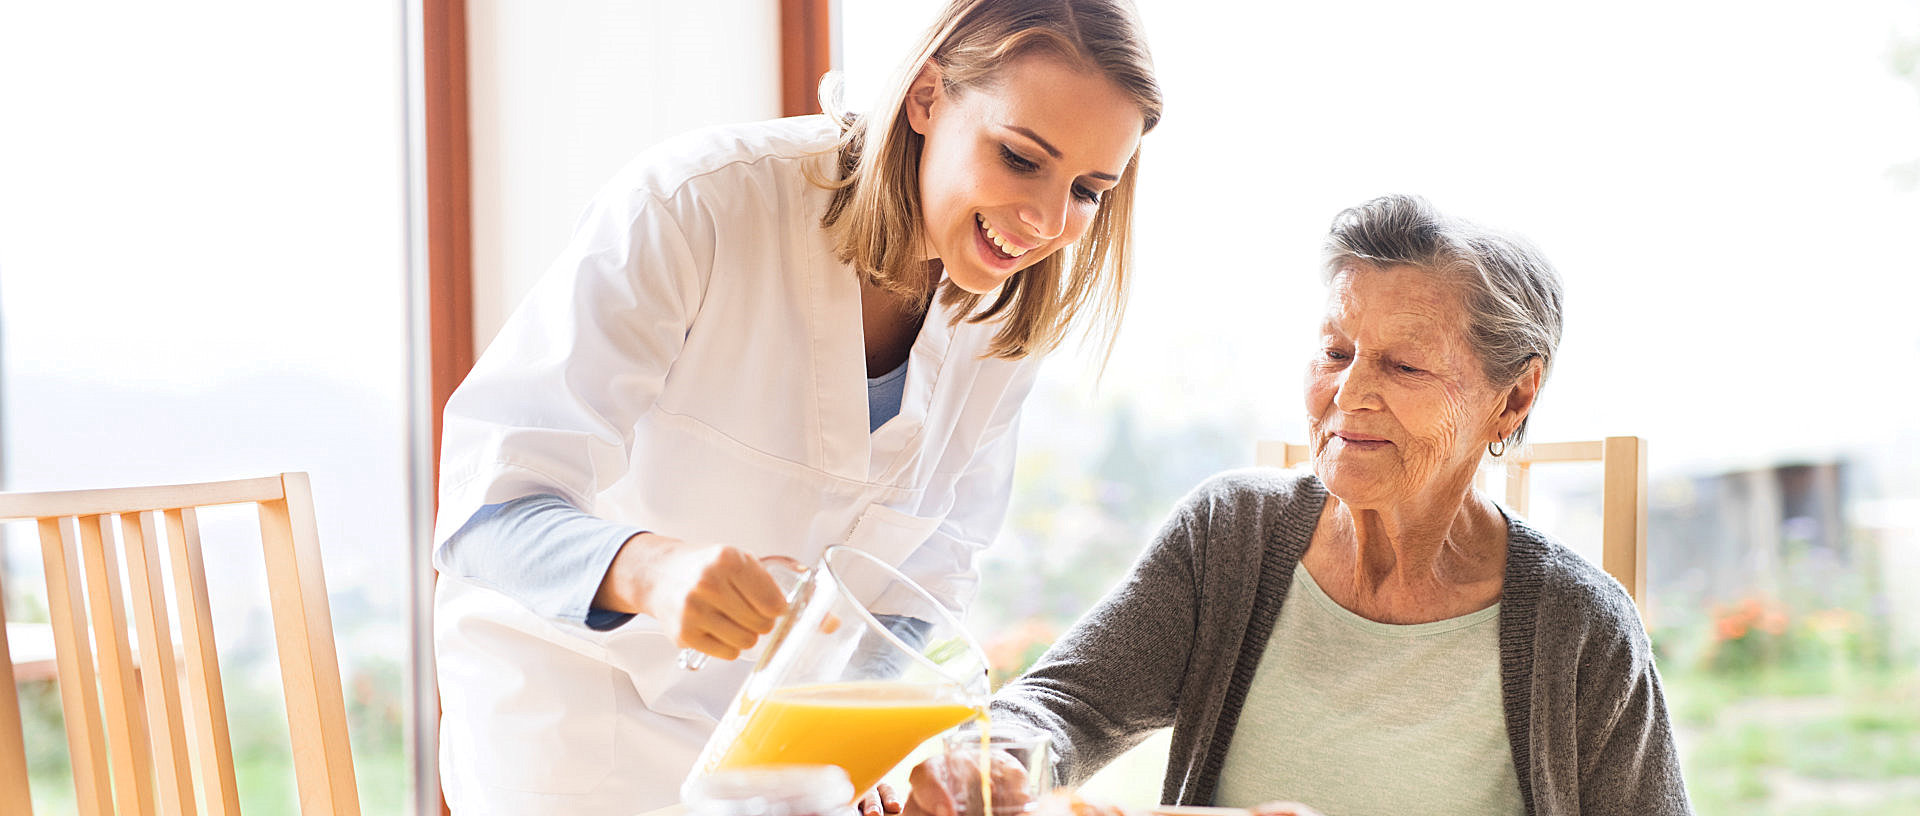 caregiver pouring juice on senior woman's glass